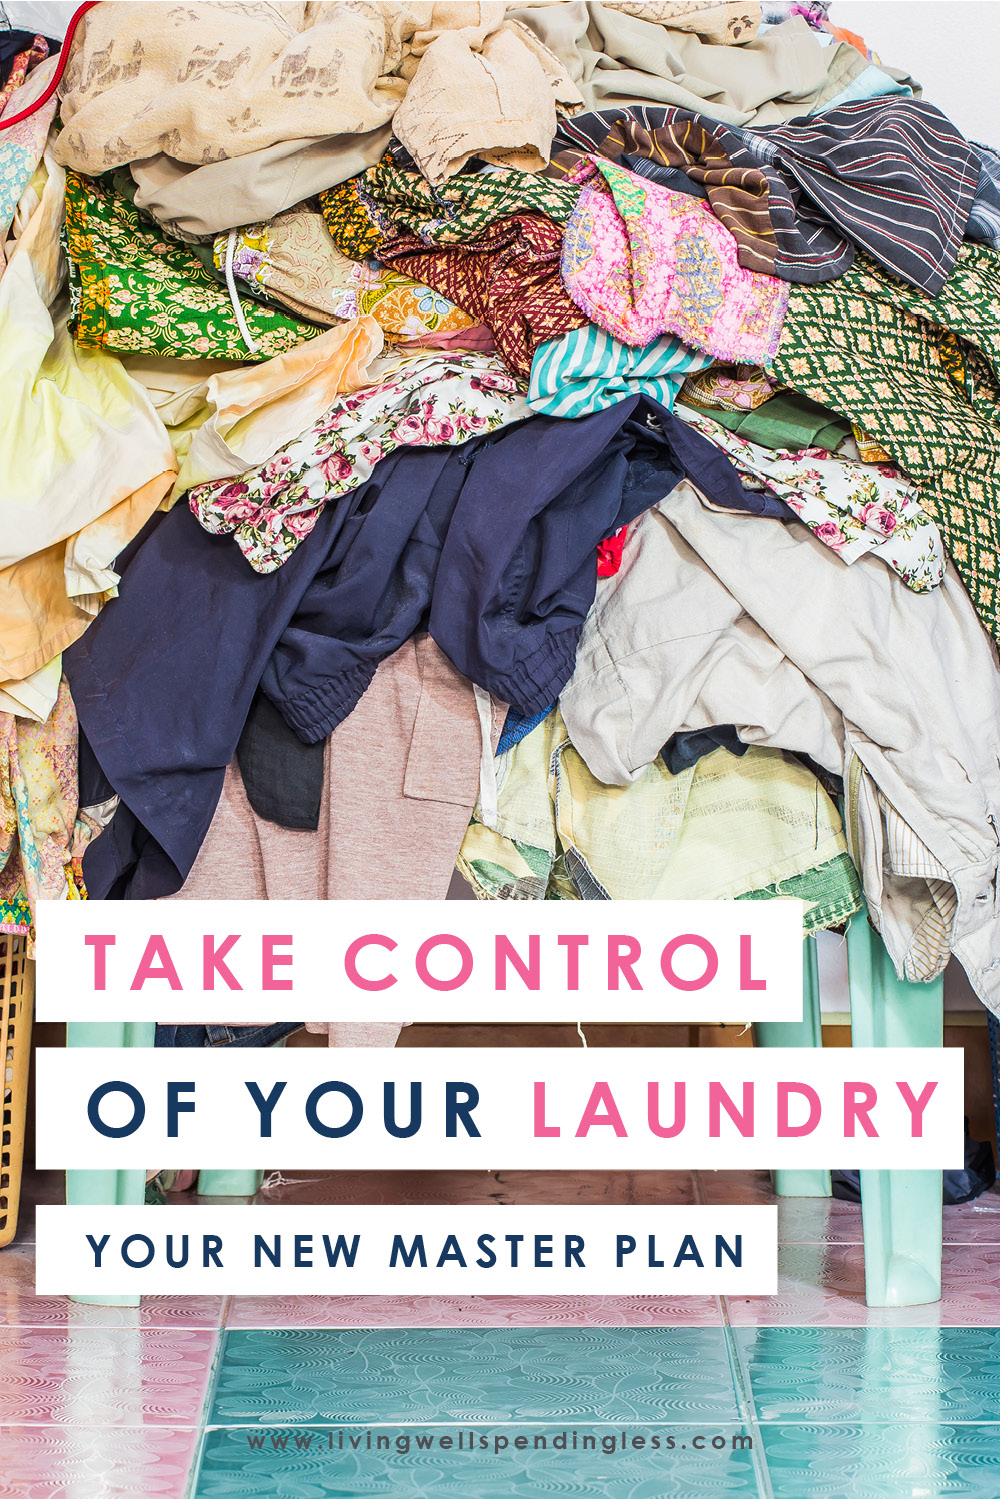 Ever feel like you're drowning in a never-ending pile of laundry? Us too! That's why we decided to take back control with this easy-to-implement masterplan that's guaranteed to make your life--and your laundry--a whole lot easier in just seven simple steps!